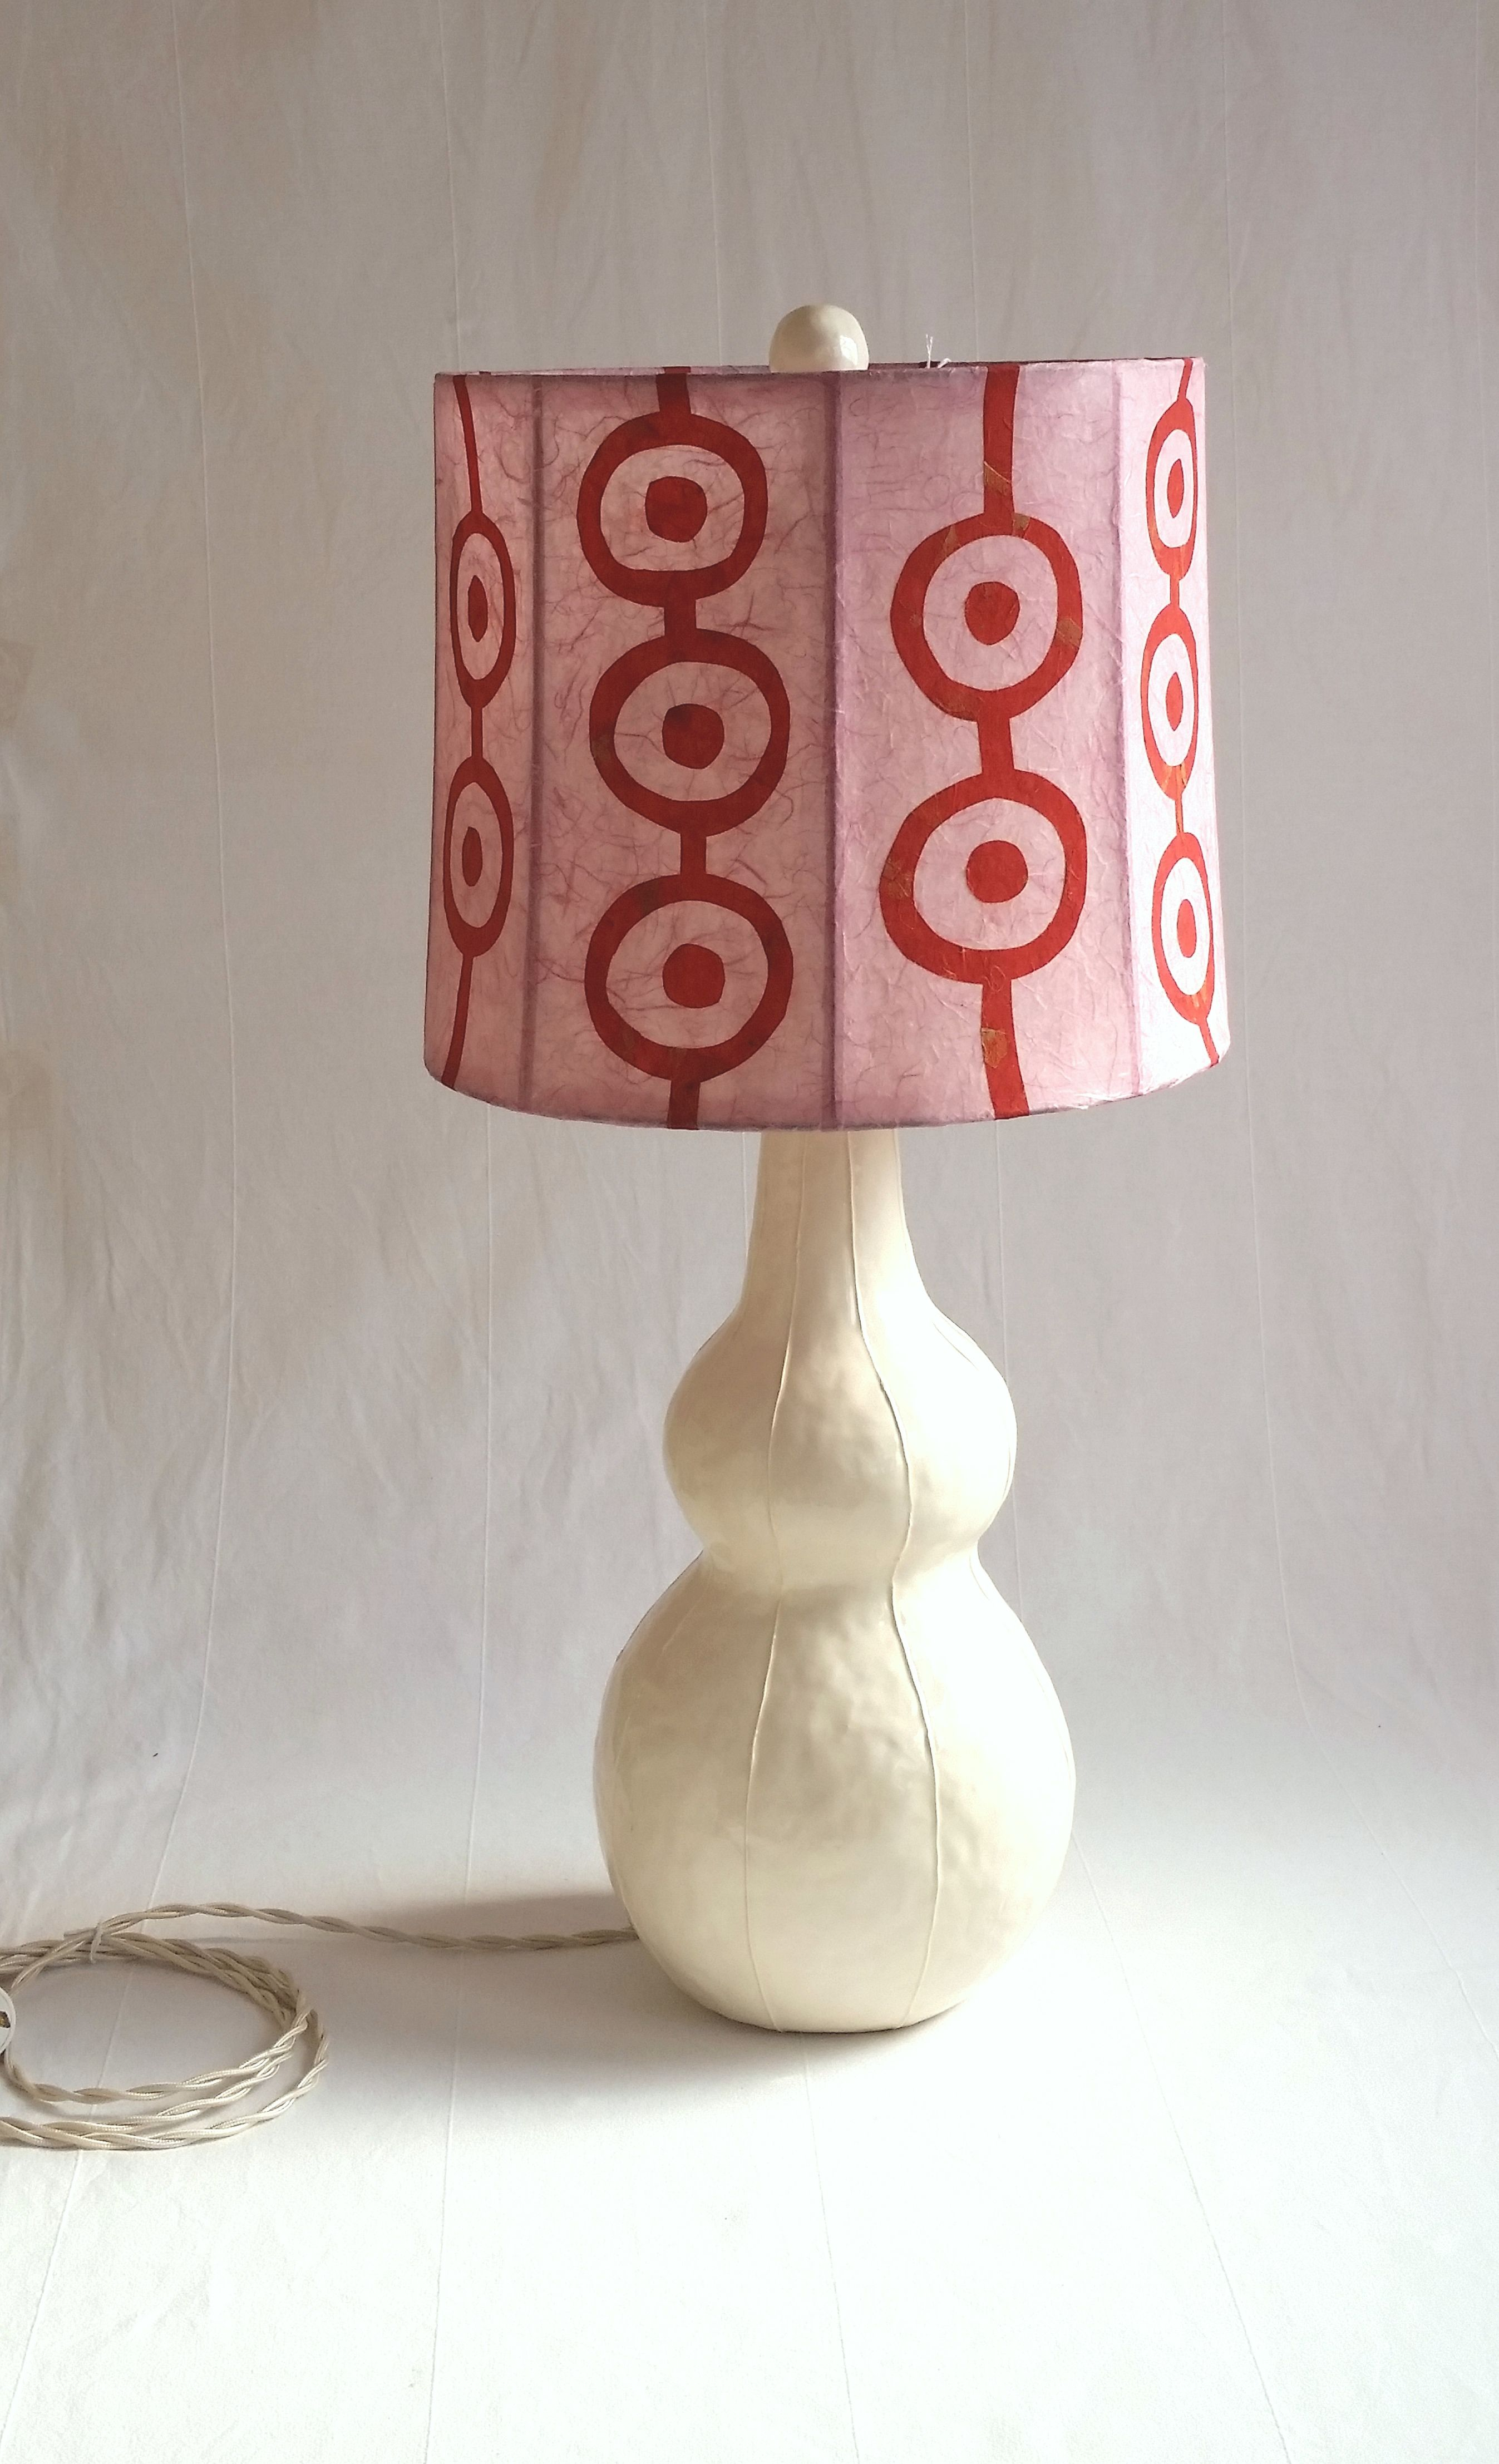 Something Special Happens When Artists Collaborate Insatiable Studios And Vit Ceramics Always Surprise When They P In 2020 Quirky Decor Lamp Inspiration Art Deco Home